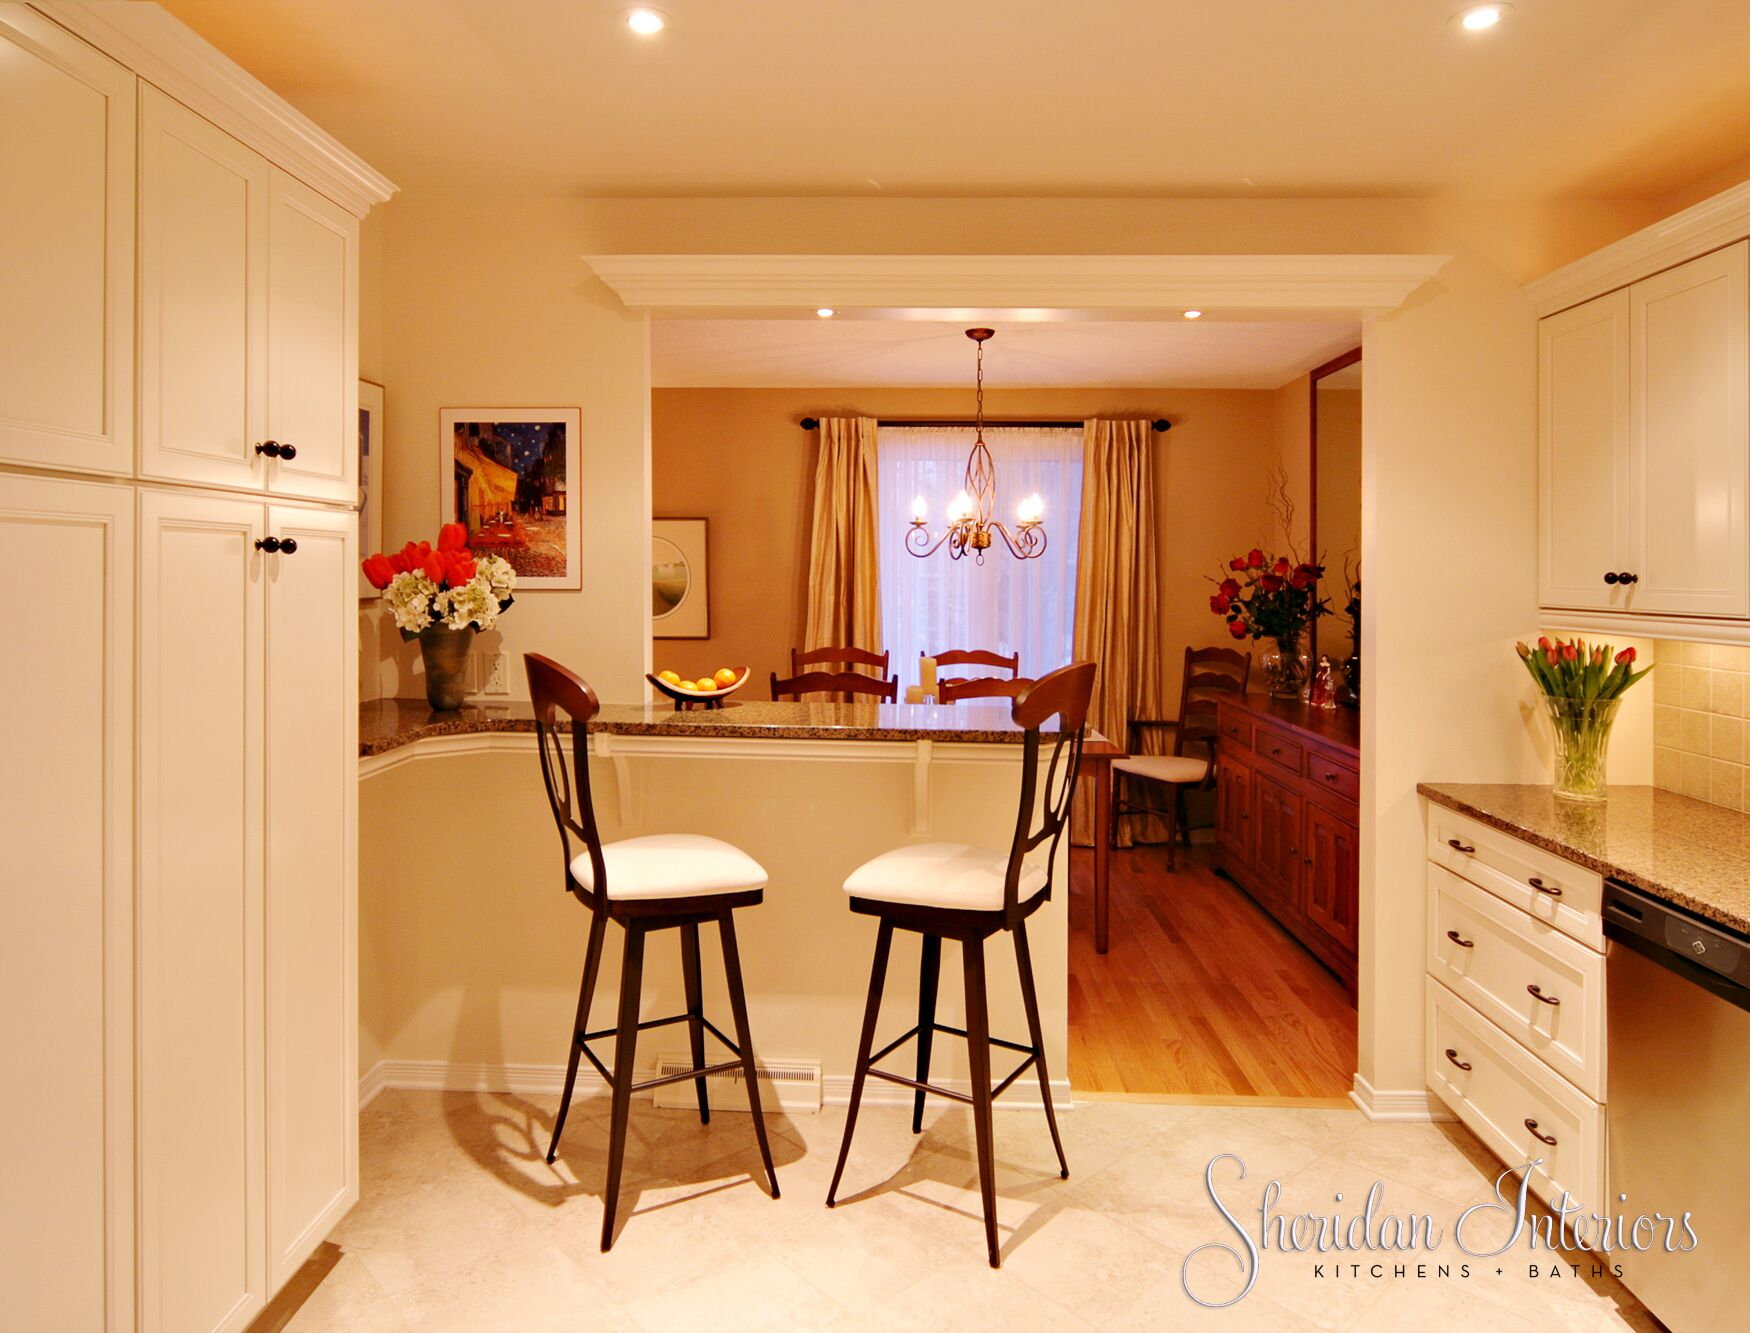 White kitchen, transitional style with breakfast bar and stools - Sheridan Interiors